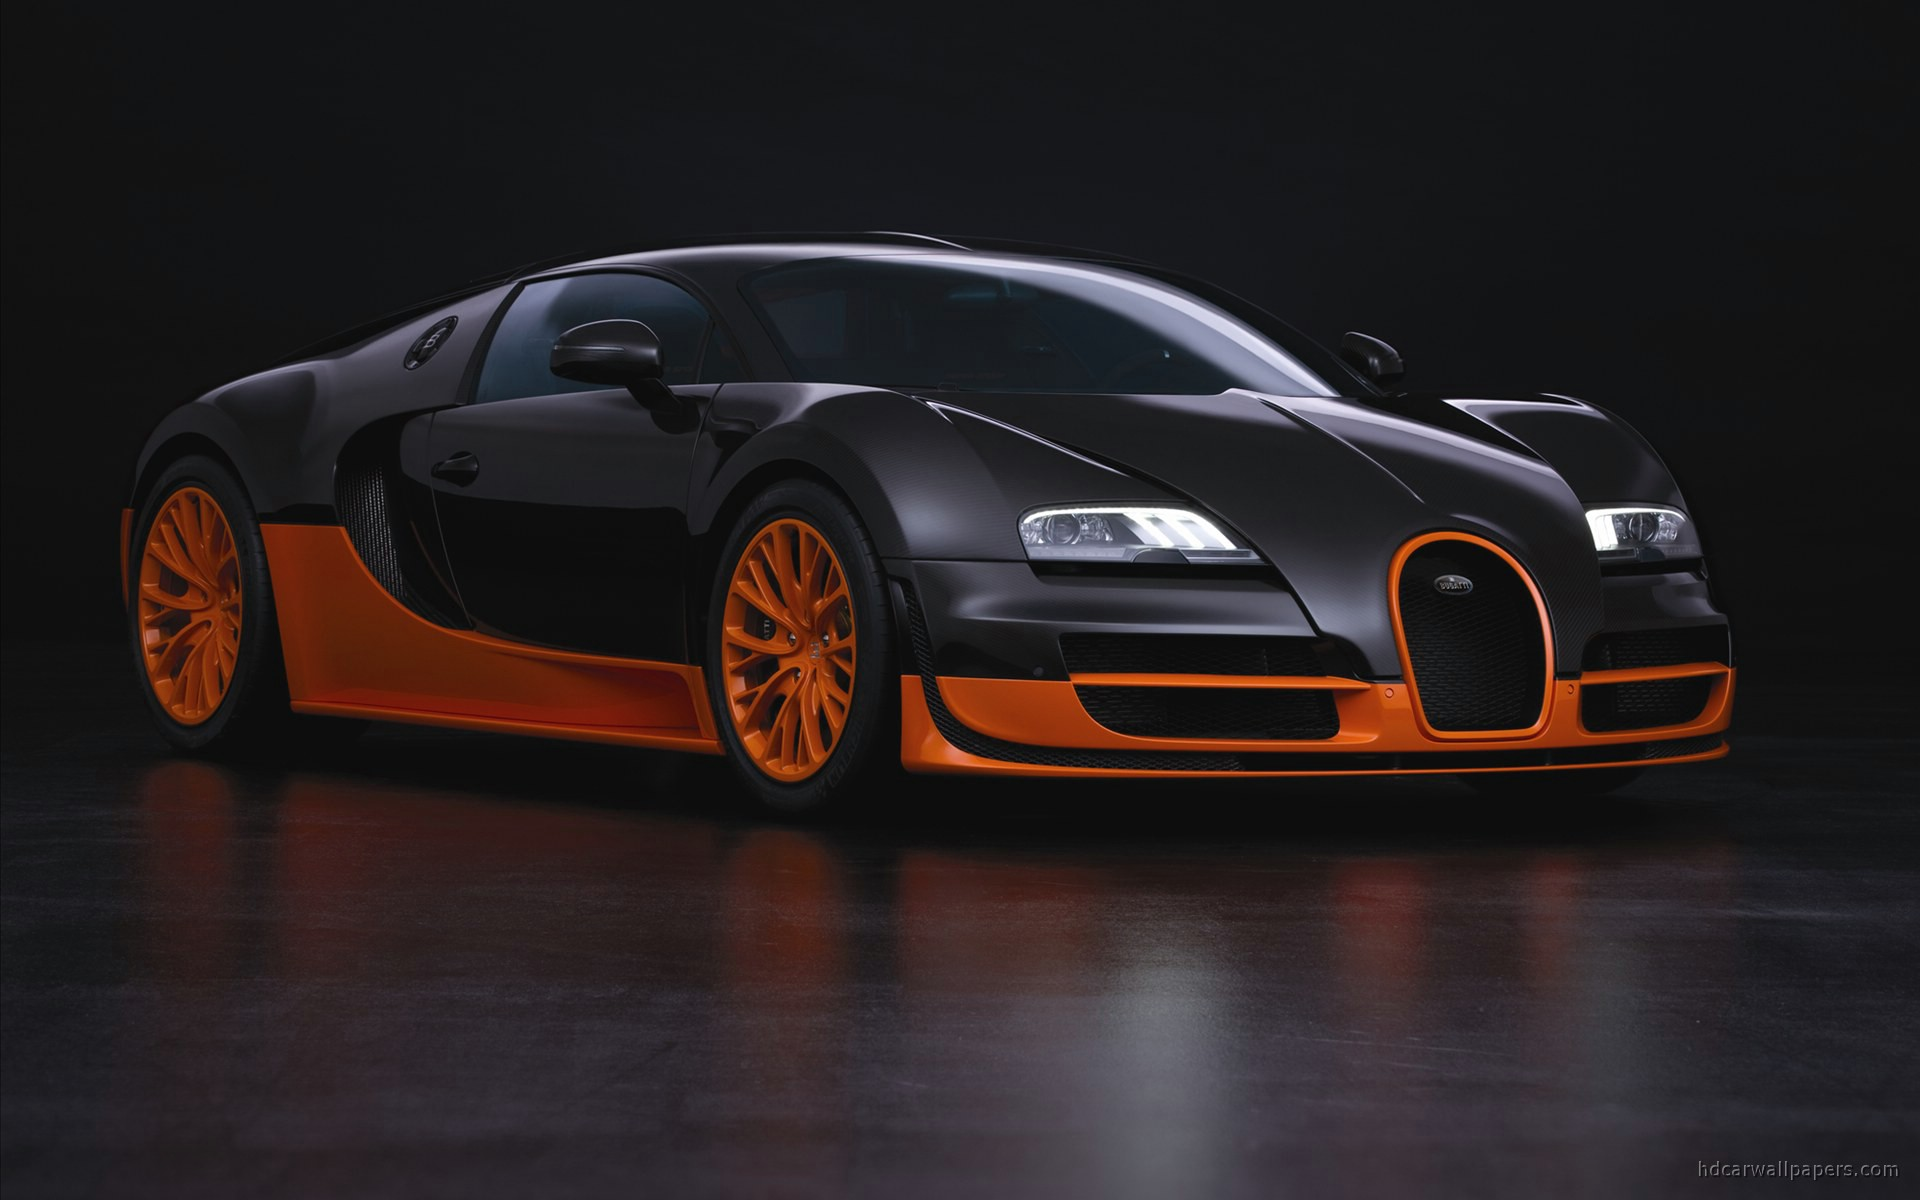 Bugatti Veyron Super Sports Car Wallpaper | HD Car ...